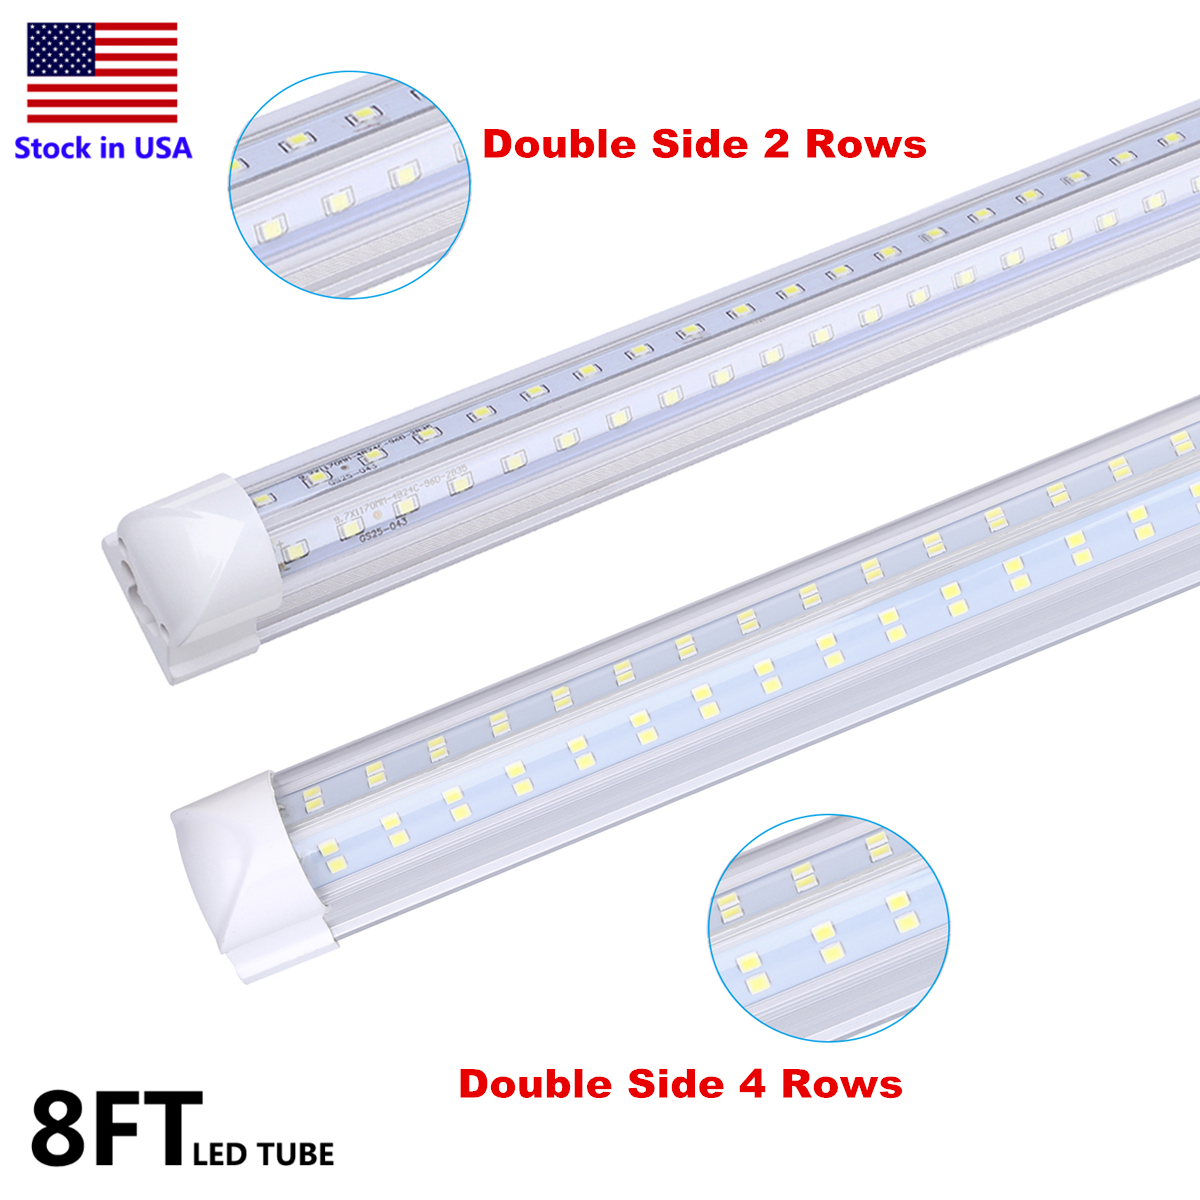 8ft Double Side 4 Rows 120W LED Tube Light Shop Light V-shaped Integrate T8 LED Tube Integrated Cooler Door Stock In US